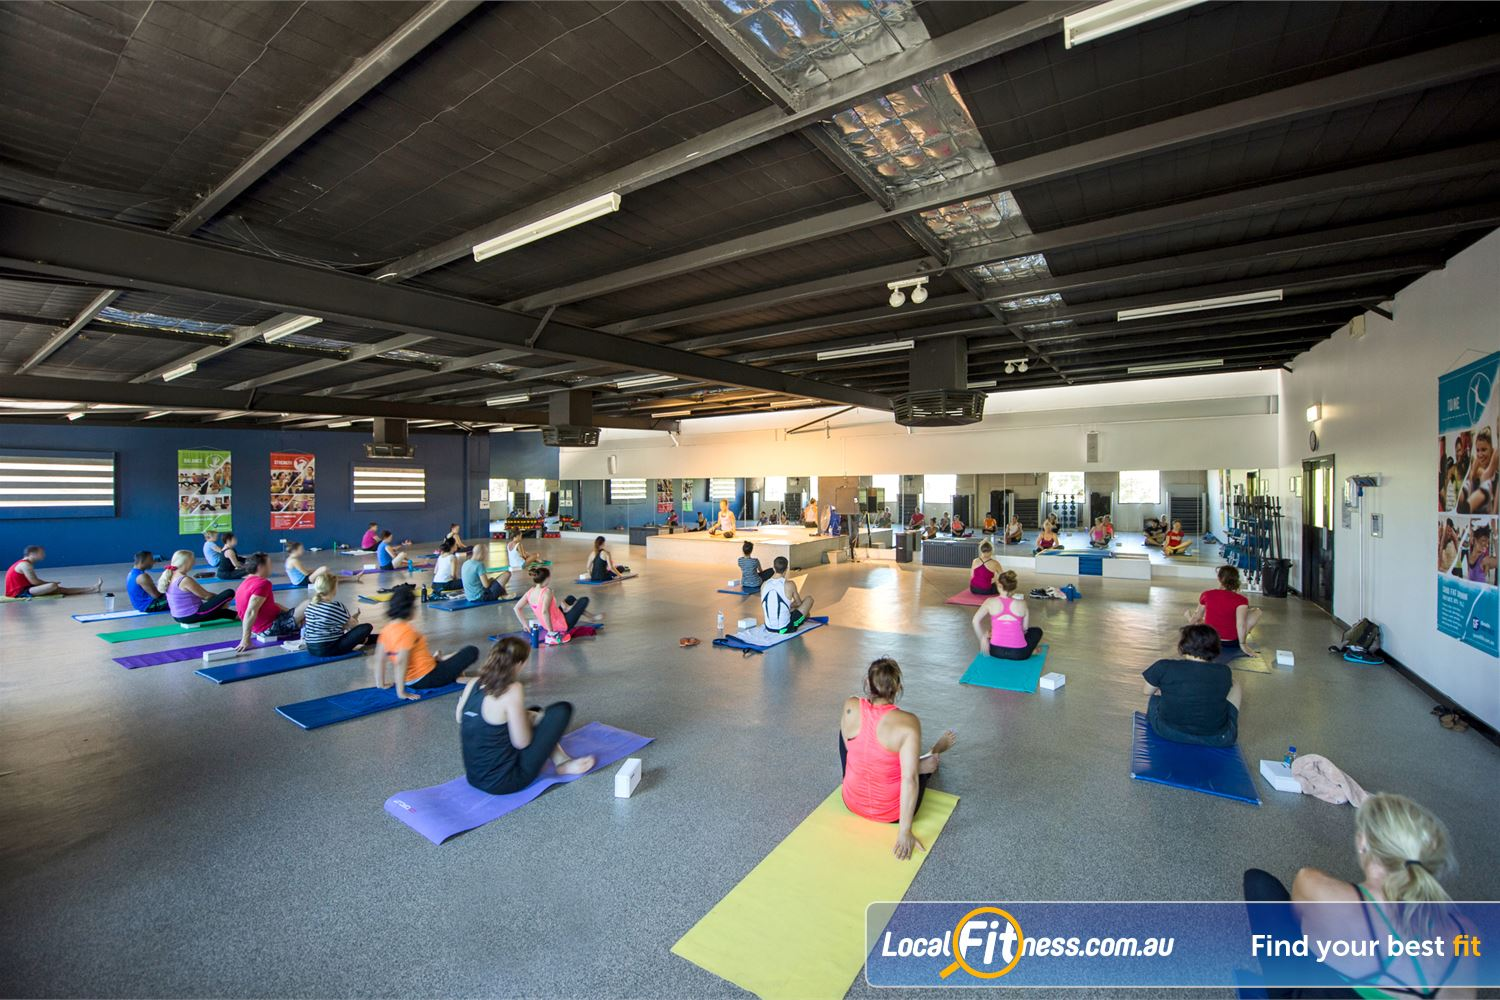 Goodlife Health Clubs Near Inglewood Popular Mount Lawley Yoga and Les Mills classes.